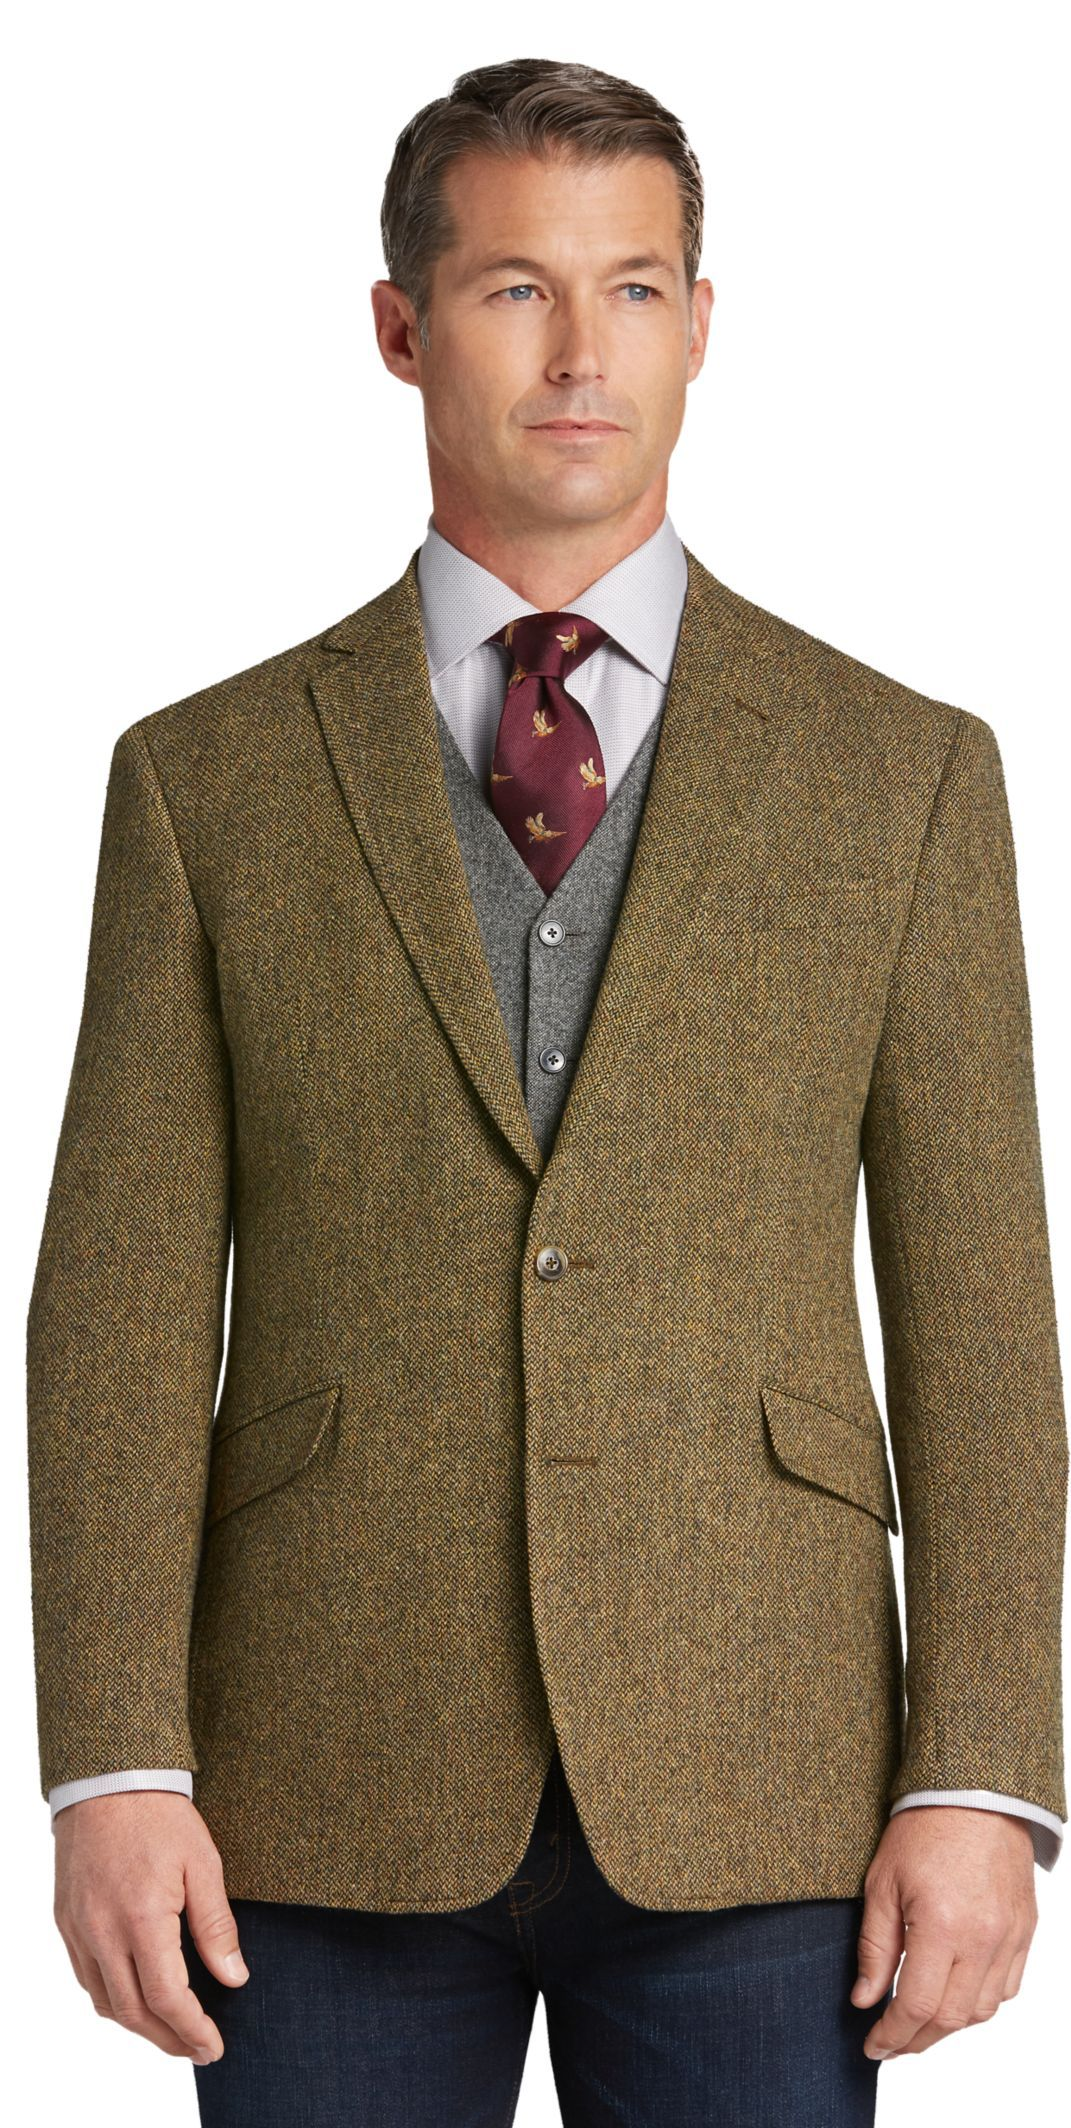 1905 Collection Tailored Fit Tweed Sportcoat CLEARANCE - All Clearance    Jos A Bank cc7cc1fa9f